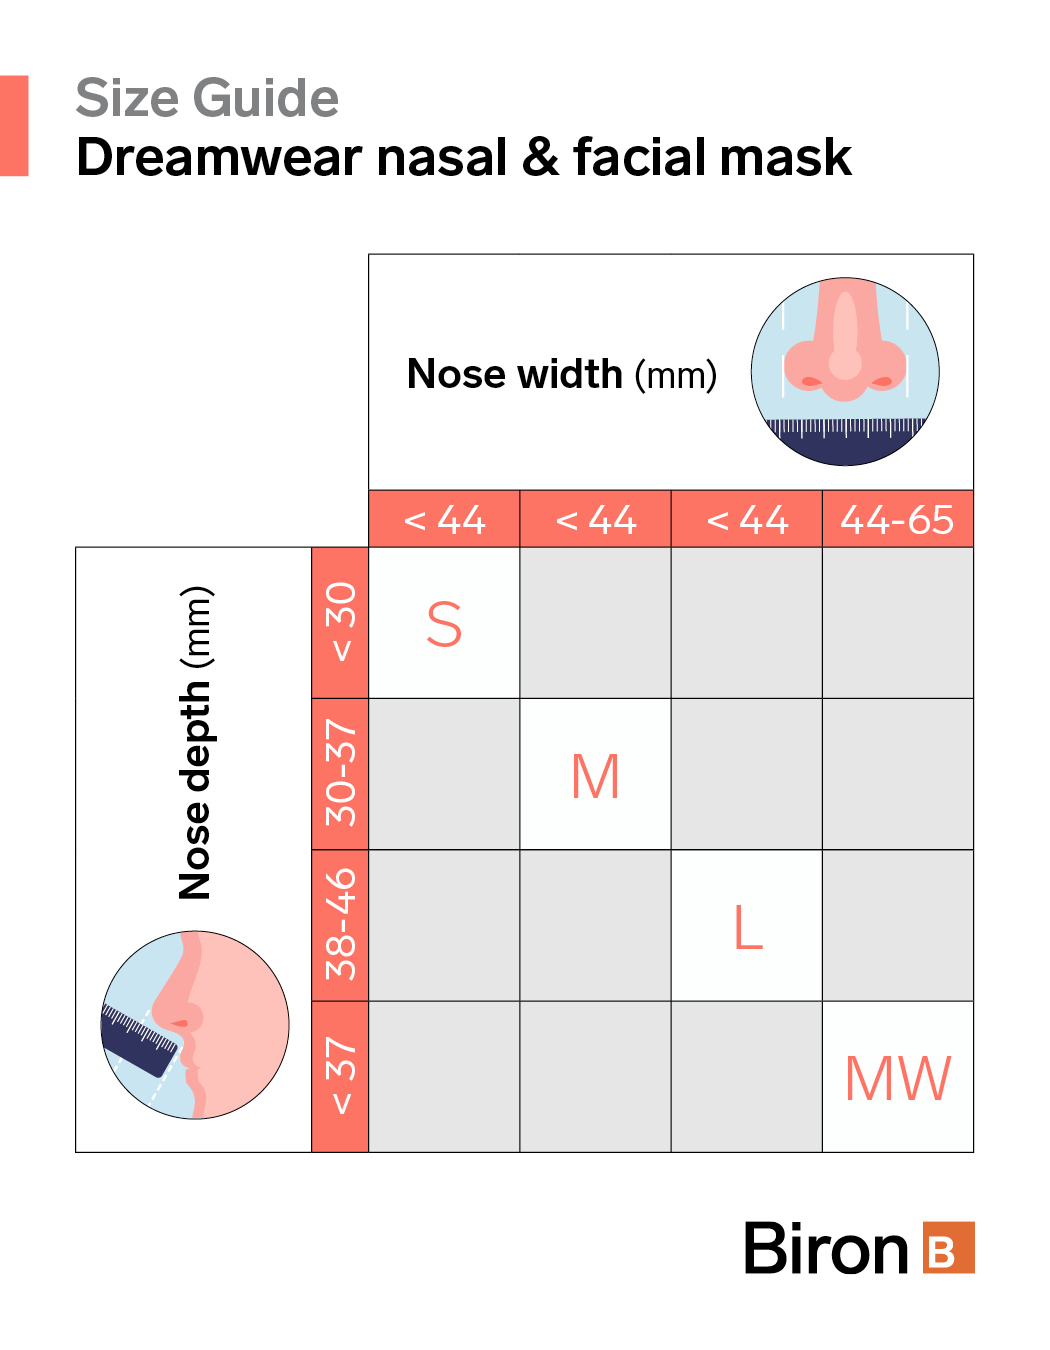 Size guide Dreamwear facial/nasal mask